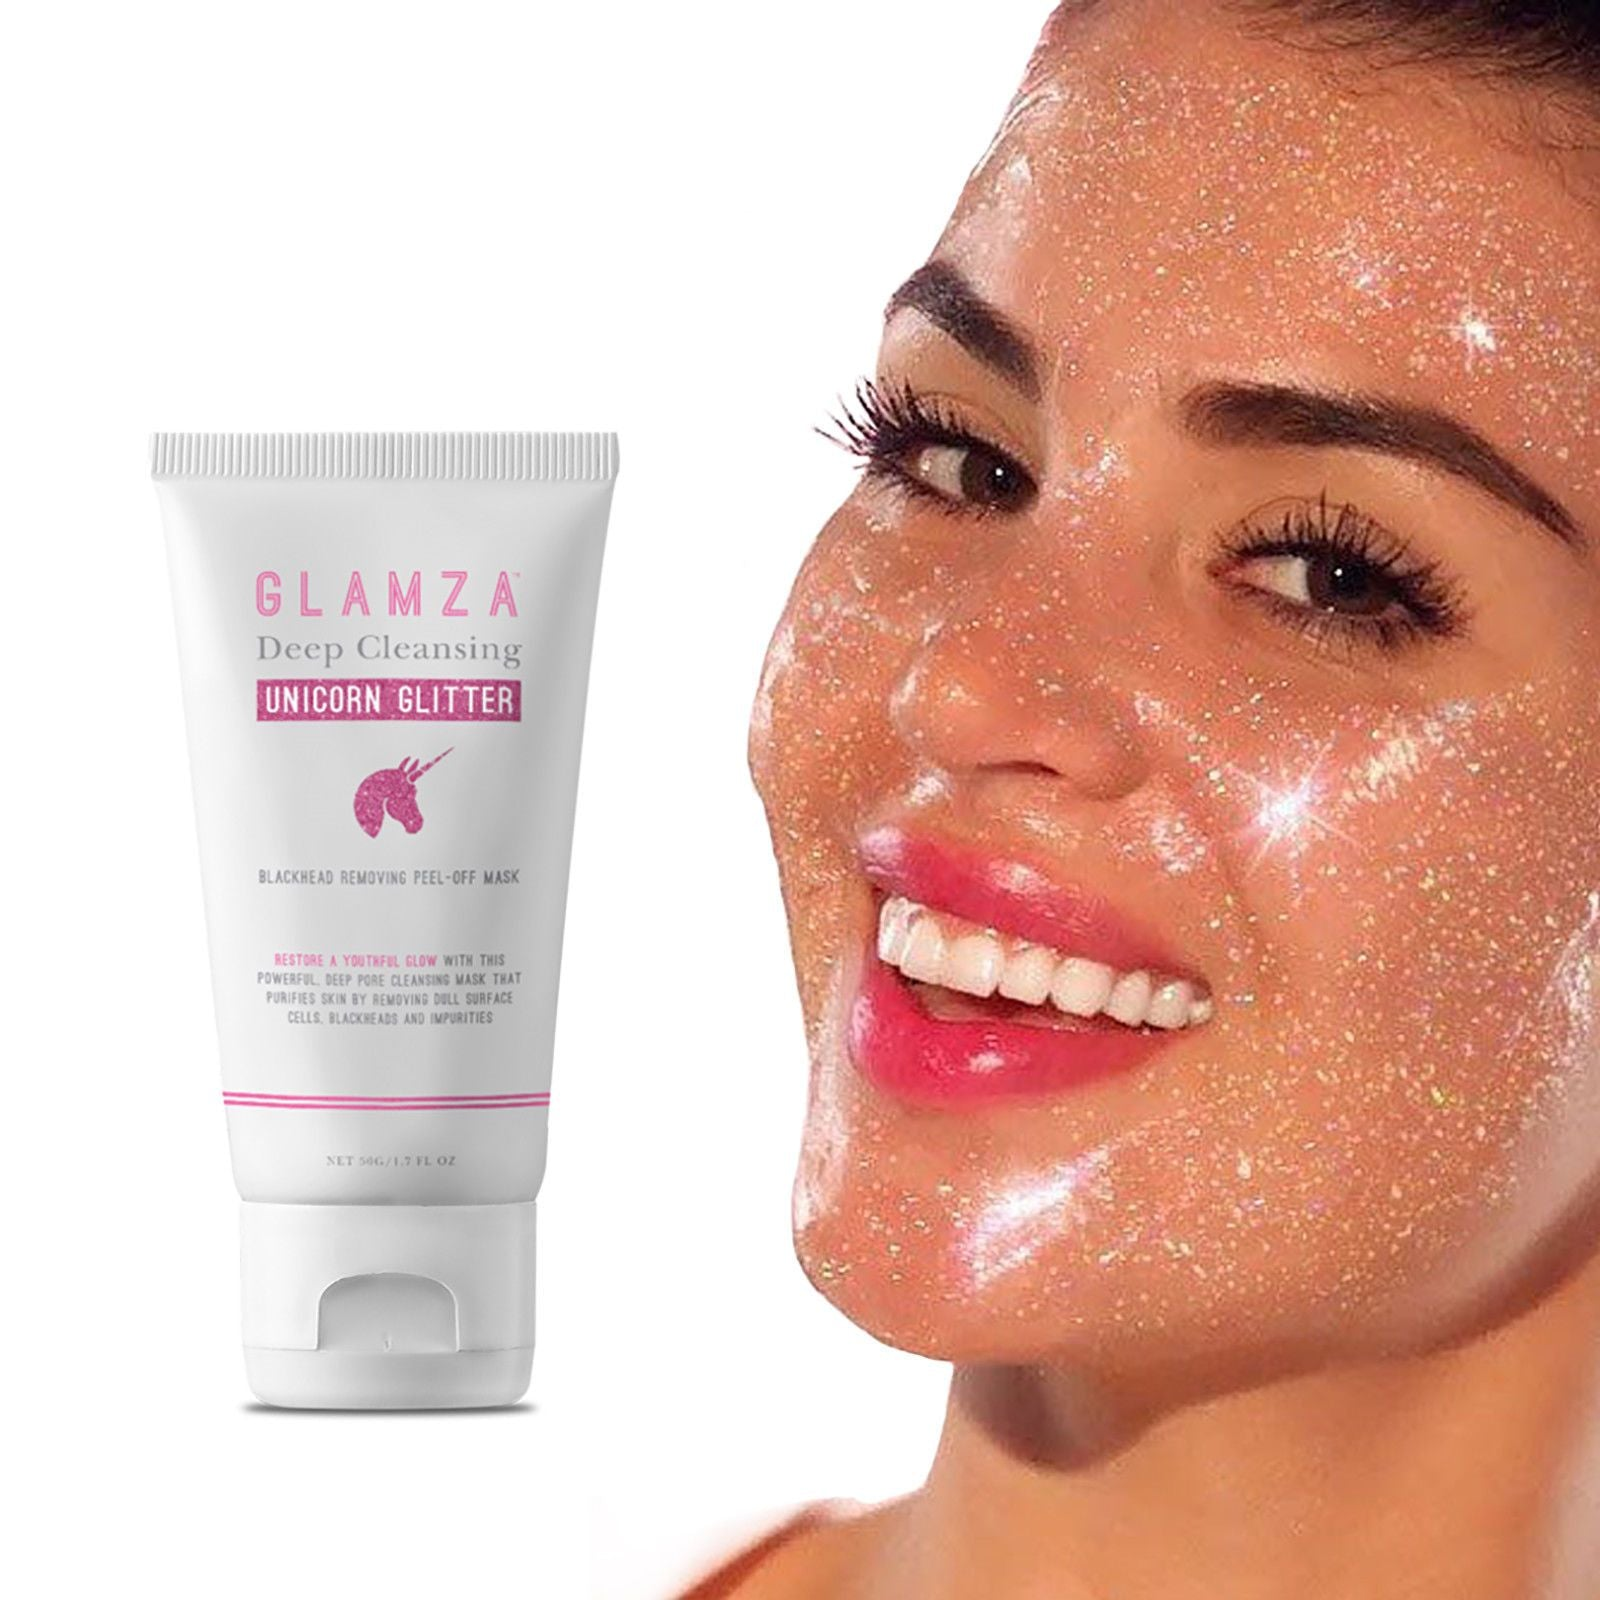 Glamza Deep Cleansing Unicorn Glitter Face Peel, Skin Care Masks & Peels by Forever Cosmetics